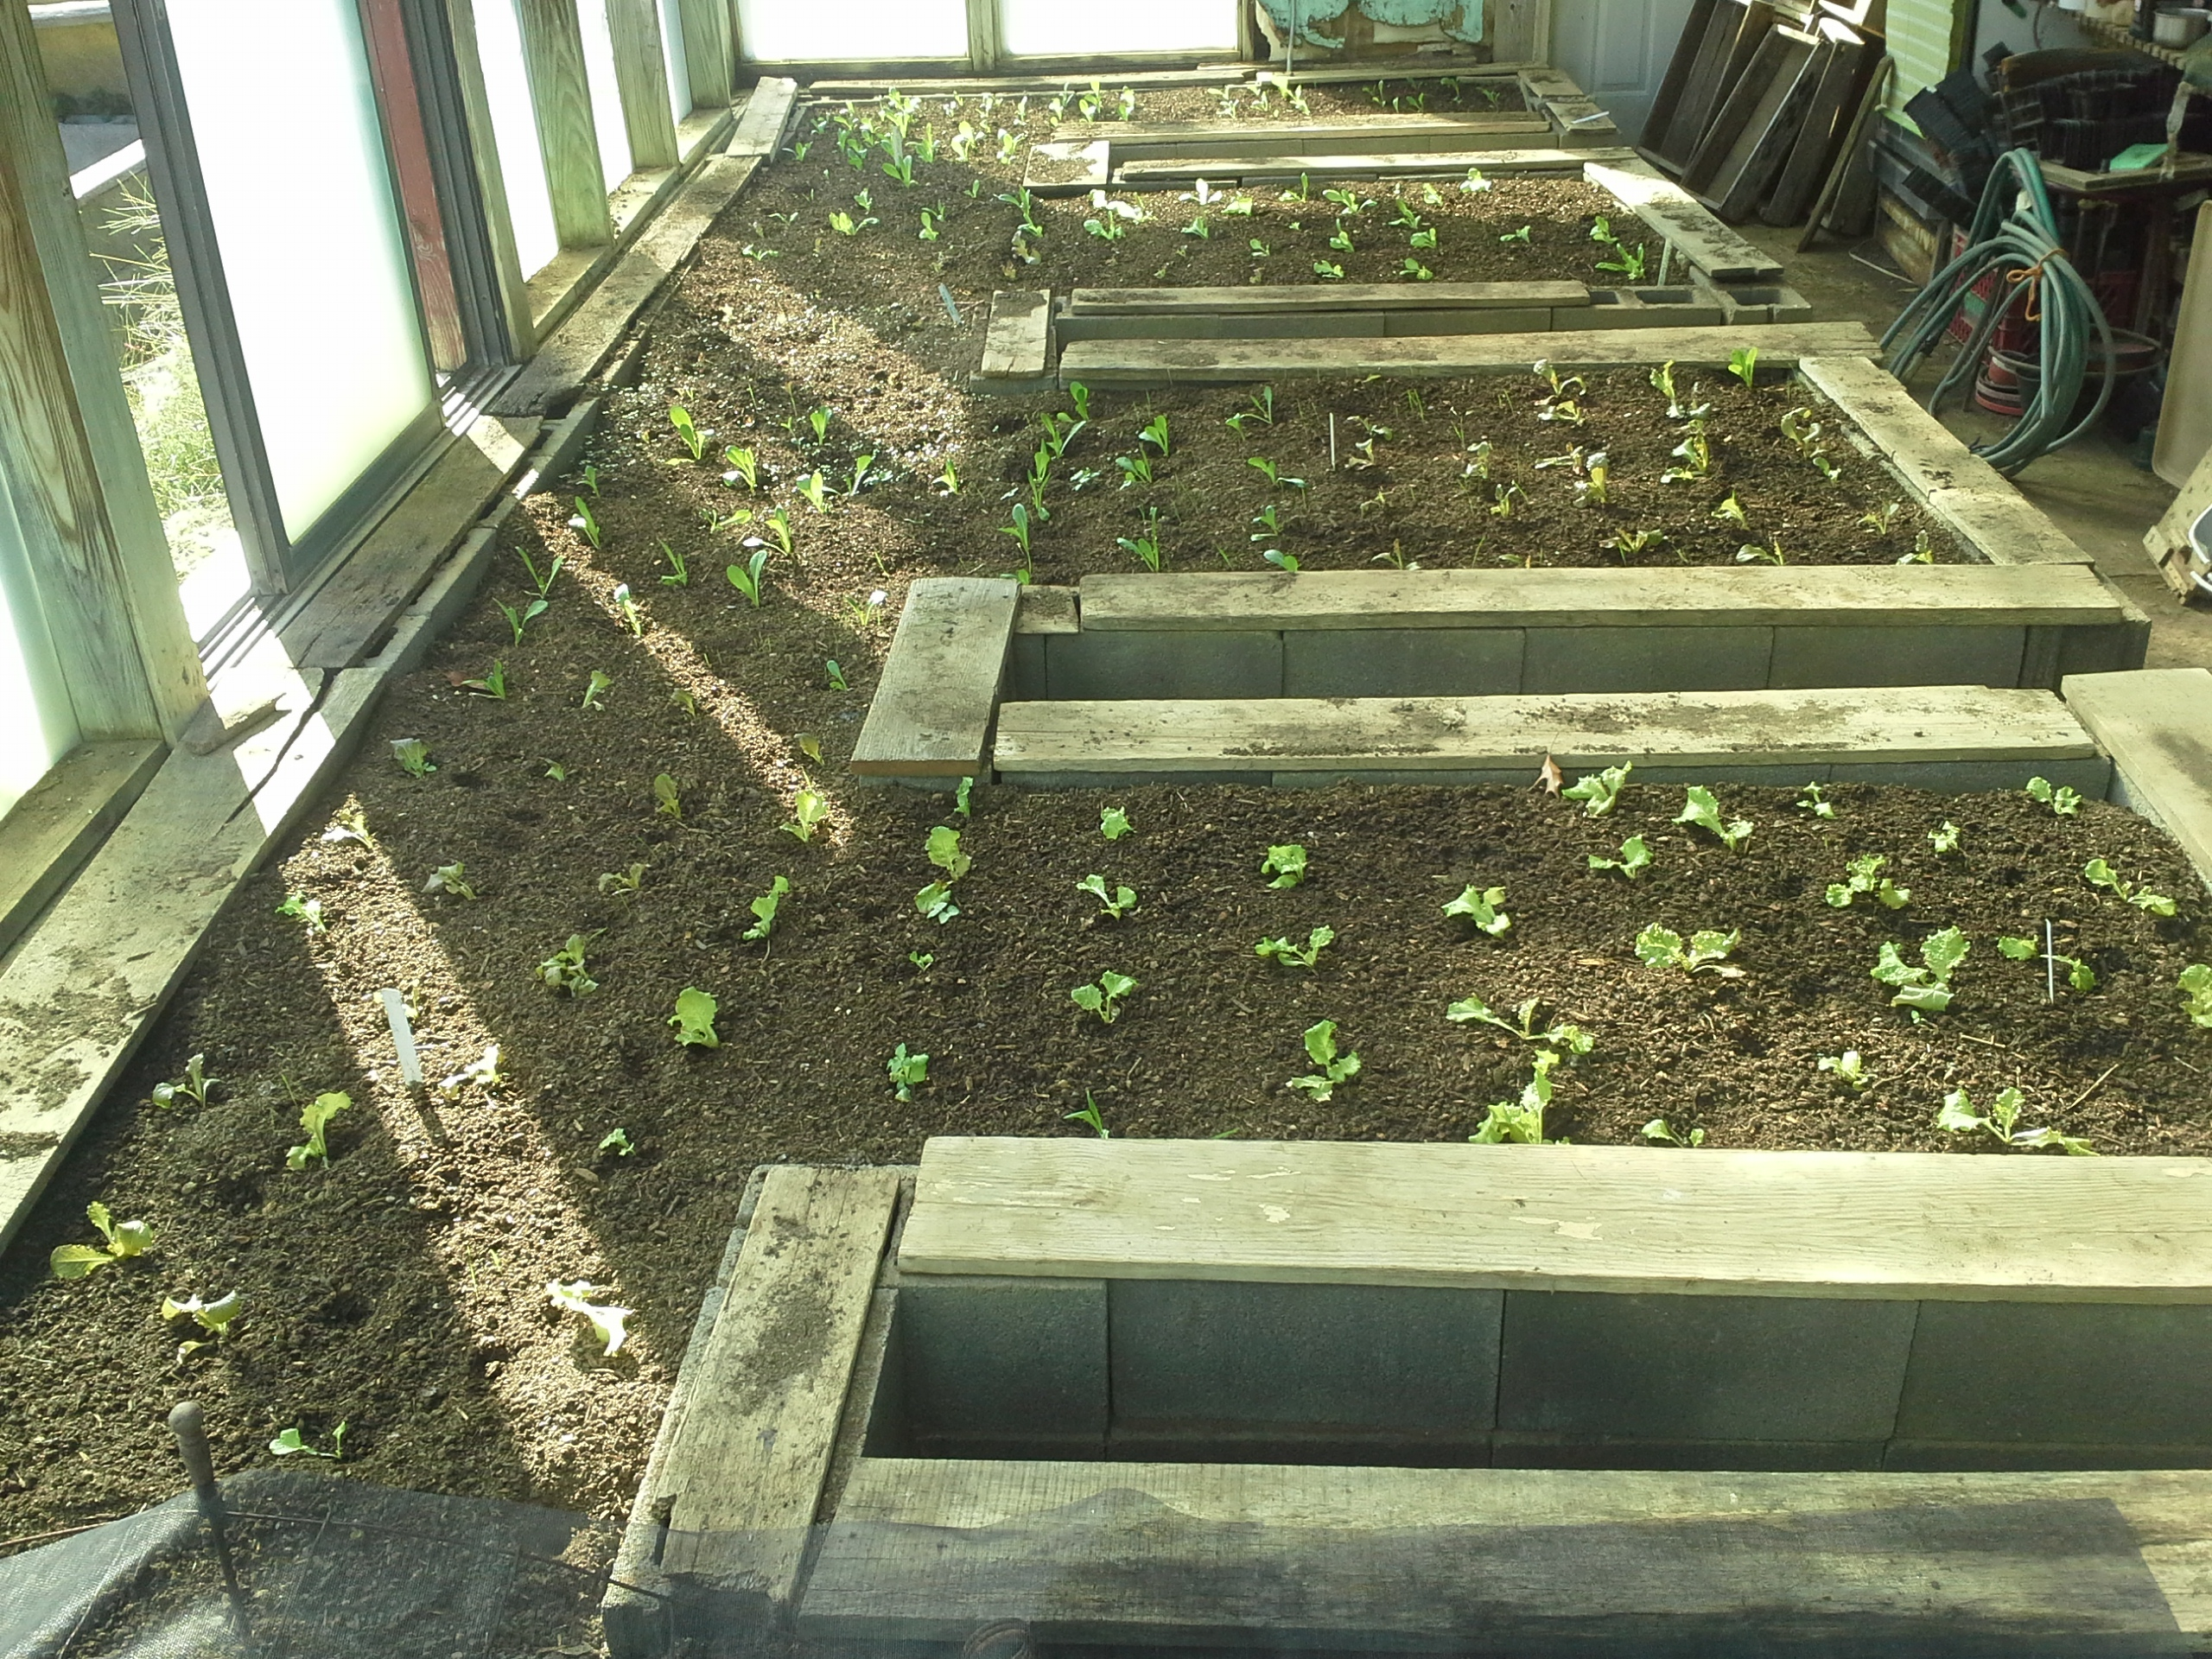 Greenhouse with young Lettuce transplants in early October. Photo Wren Vile